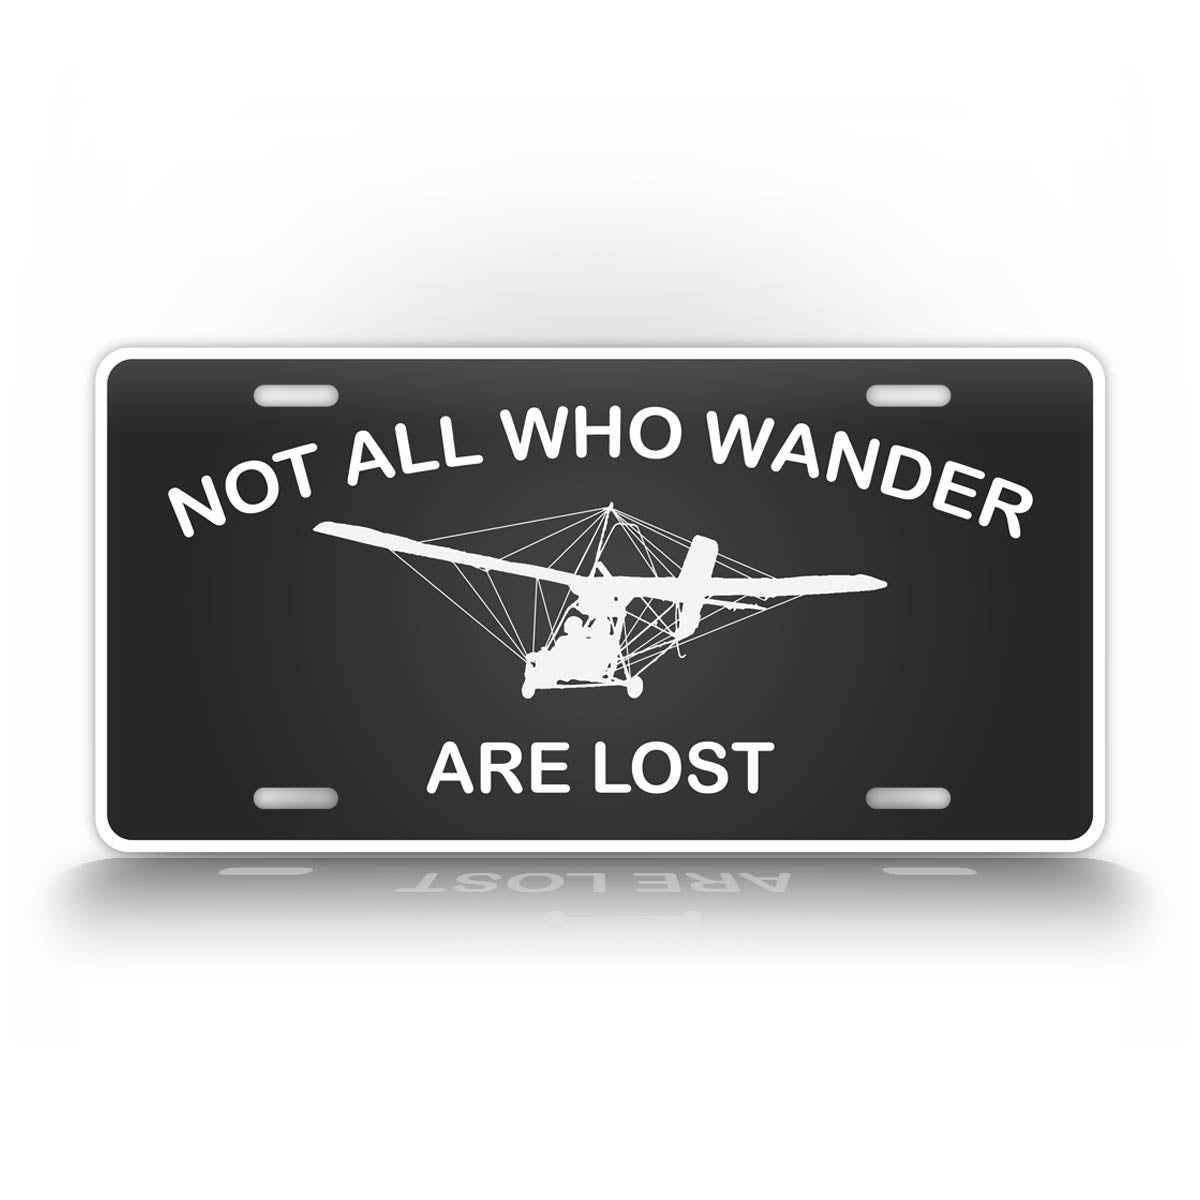 Not All Who Wander Are Lost Ultralight License Plate